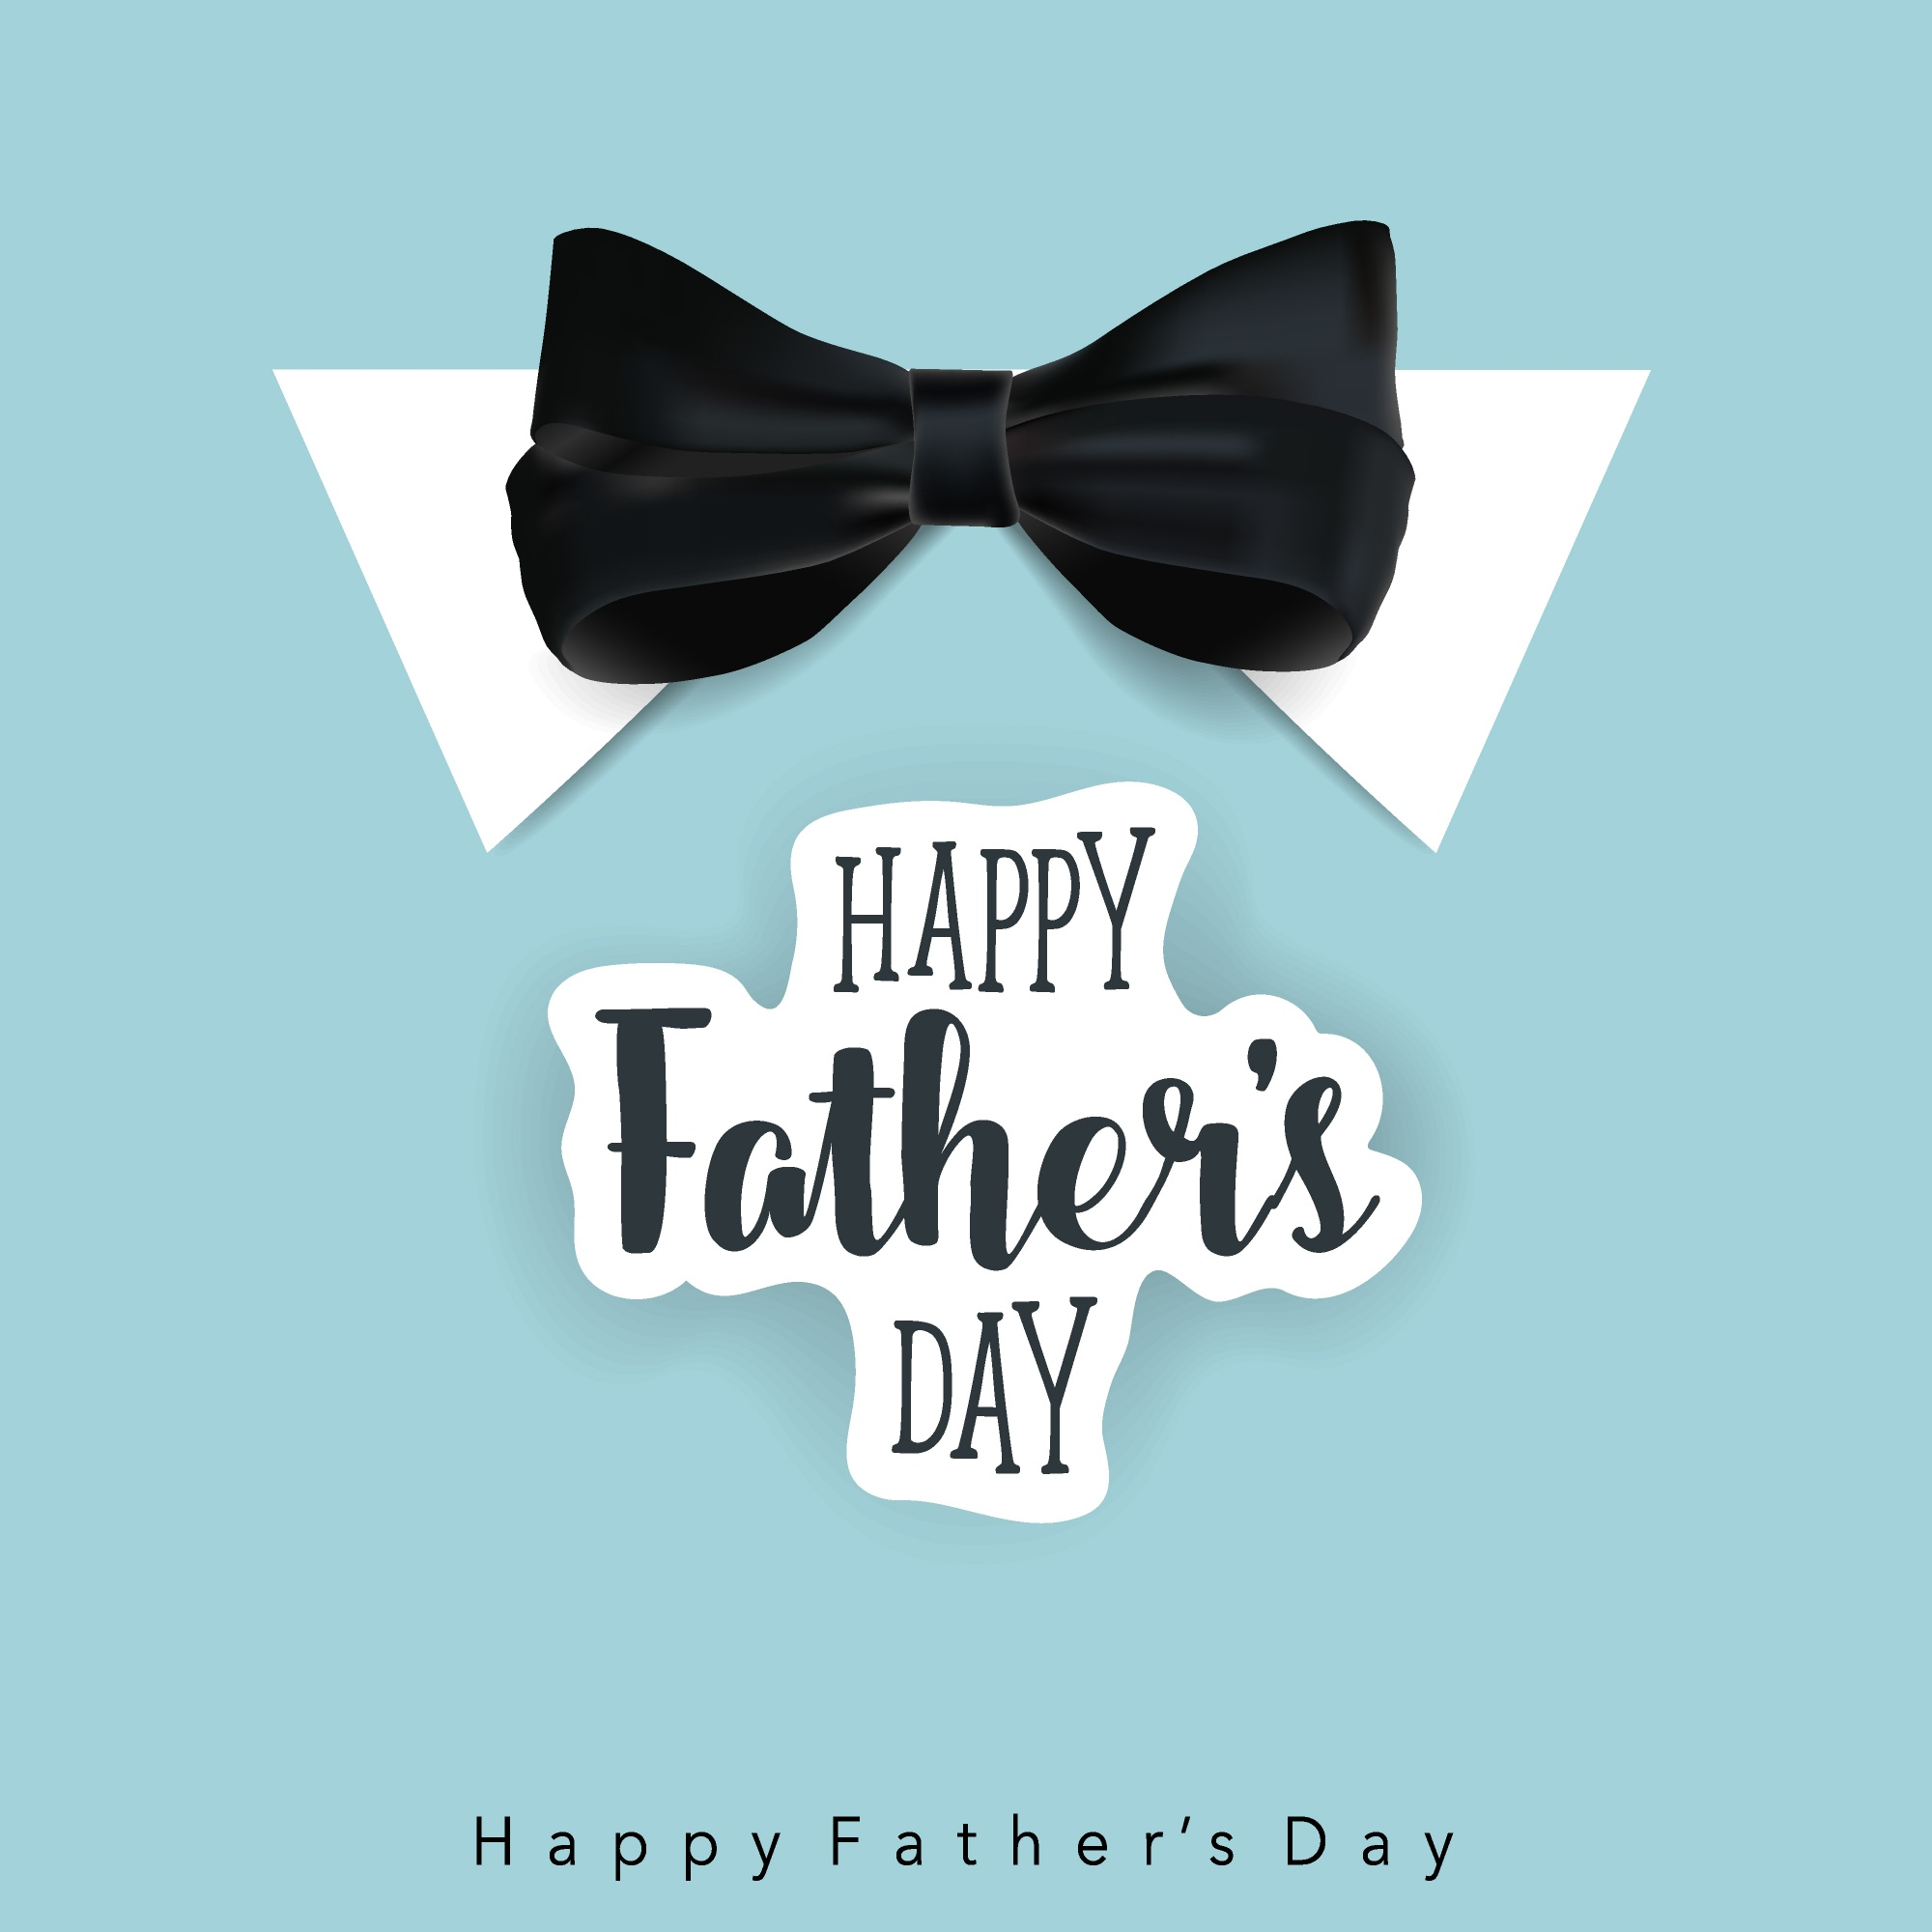 Happy father's day with bow tie background